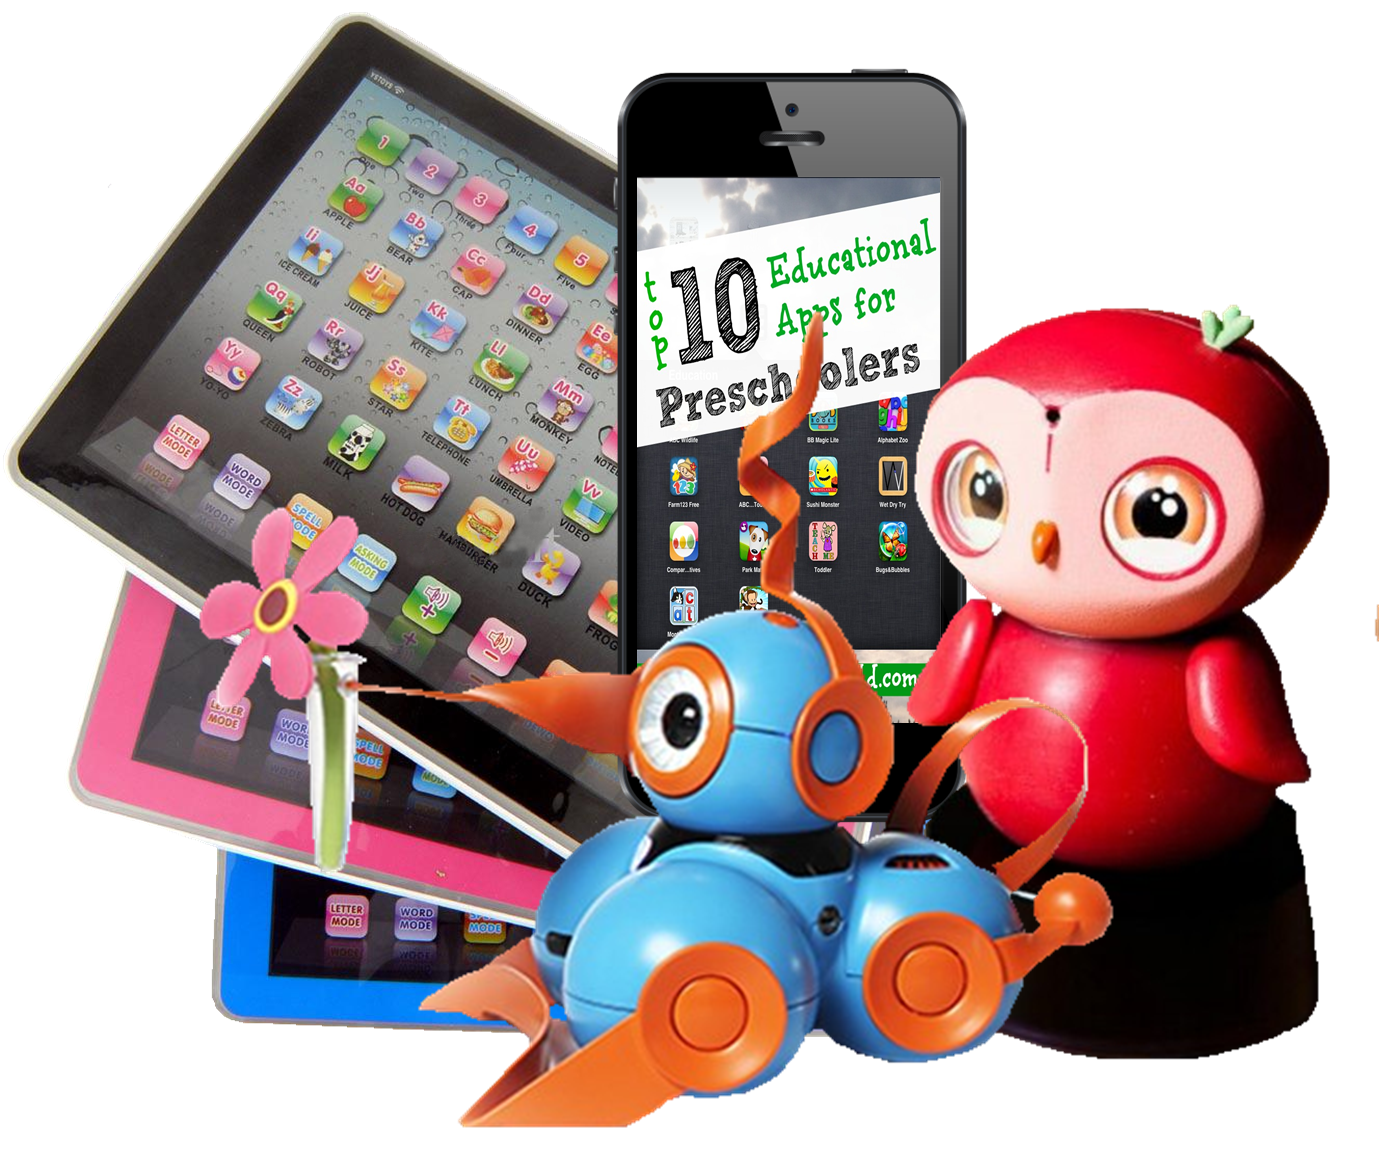 Best Educational Toys For Tech : Tech toys can help prepare pre schoolers for stem education